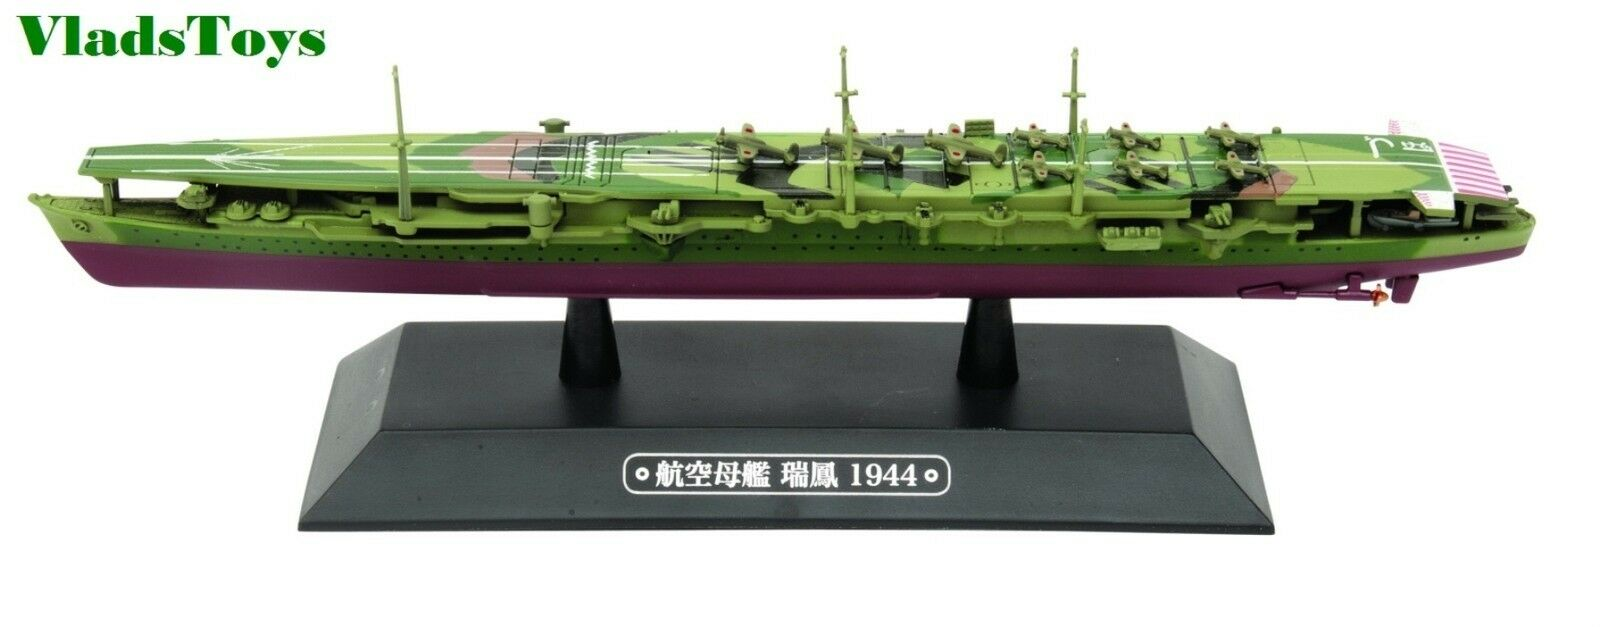 Eaglemoss 1 1100 Zuiho-class carrier IJN light aircraft carrier zuiho - 1944